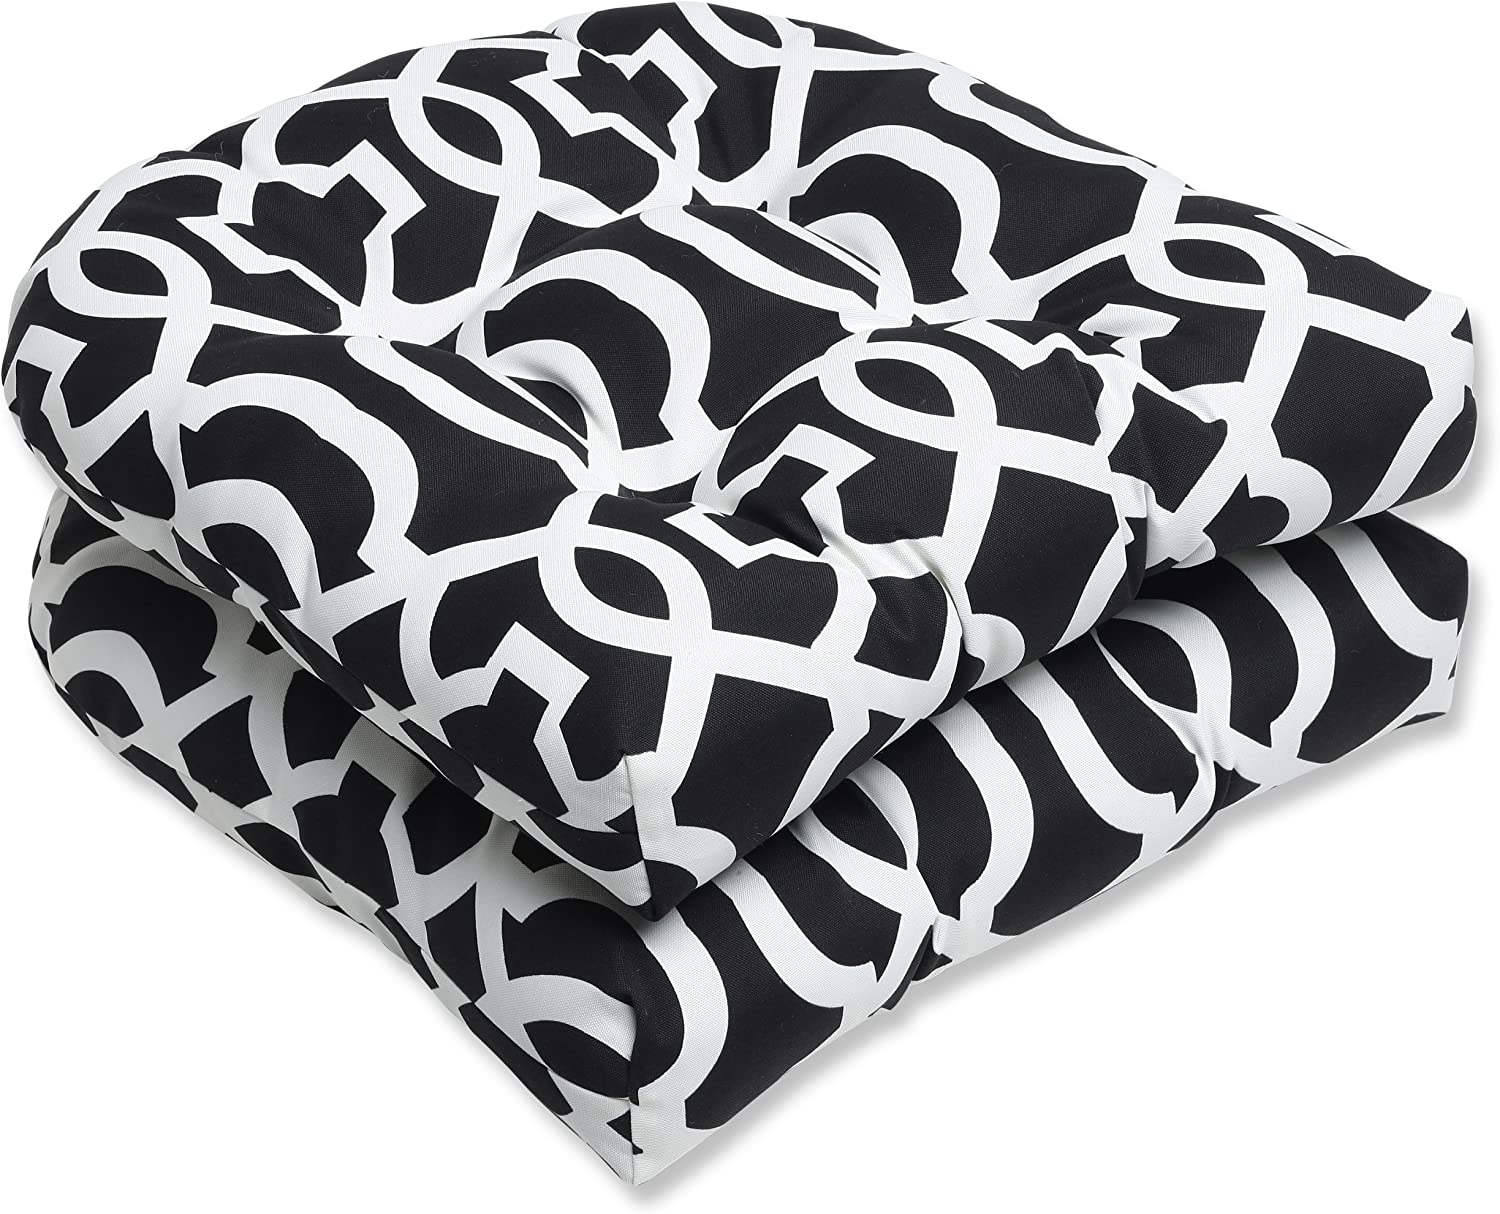 Pillow Perfect Outdoor New Geo Wicker Seat Cushion, Black White, Set of 2